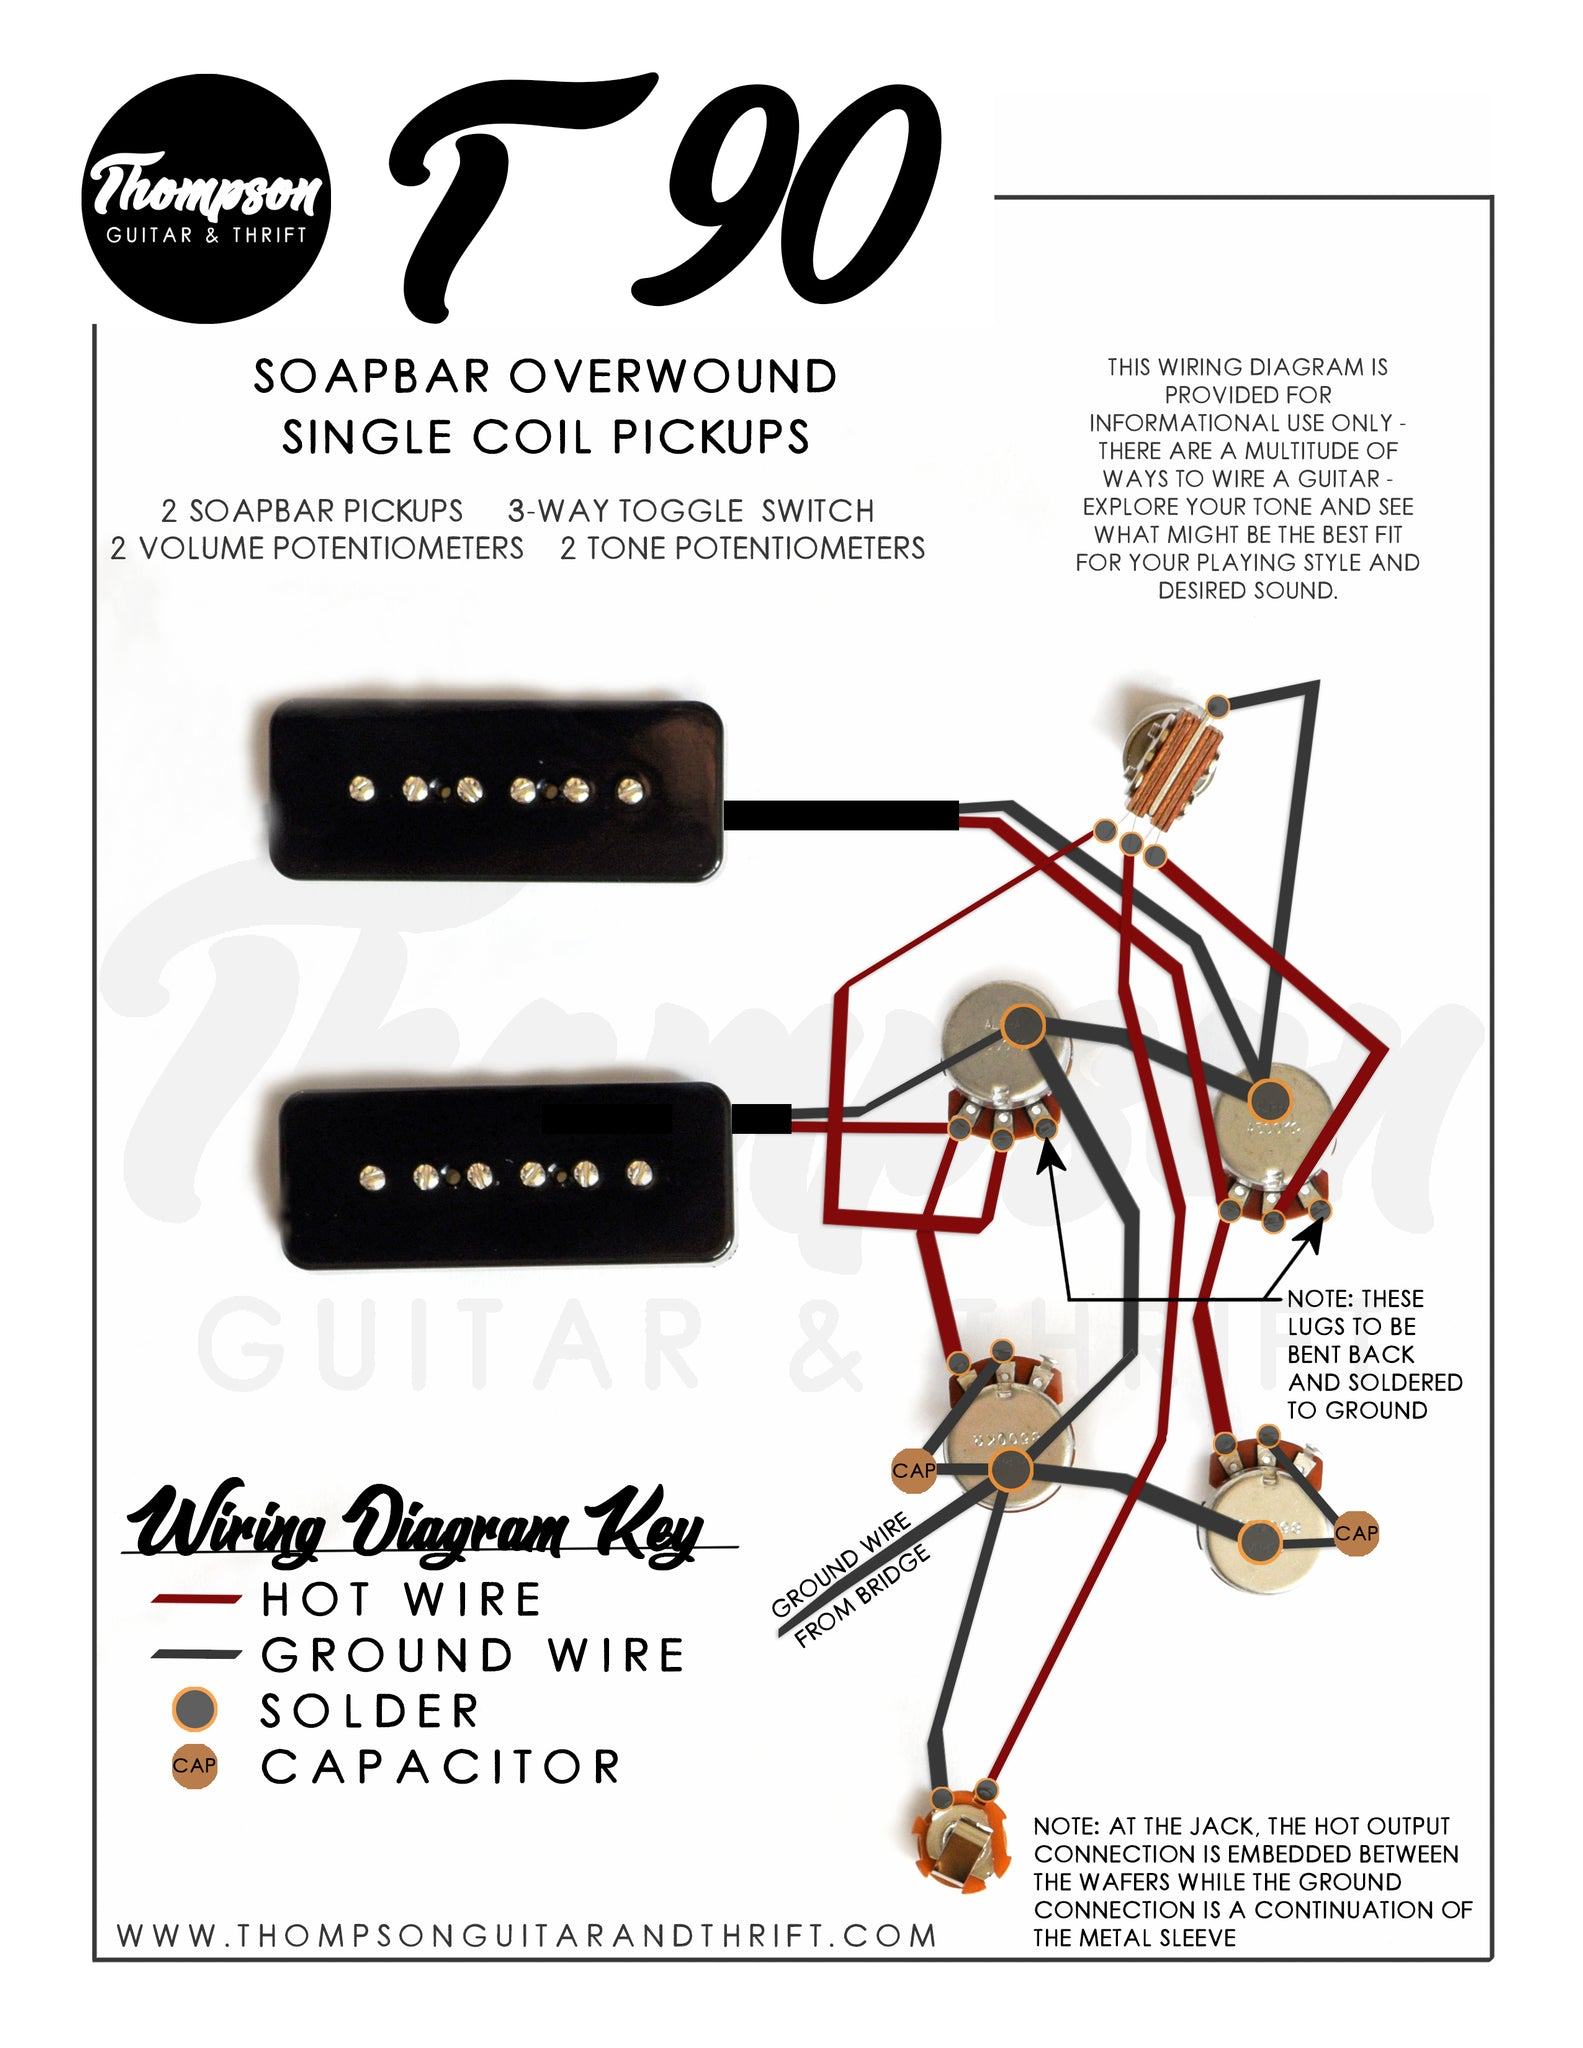 T90 Soapbar Single Coil Pickup Wiring Diagram